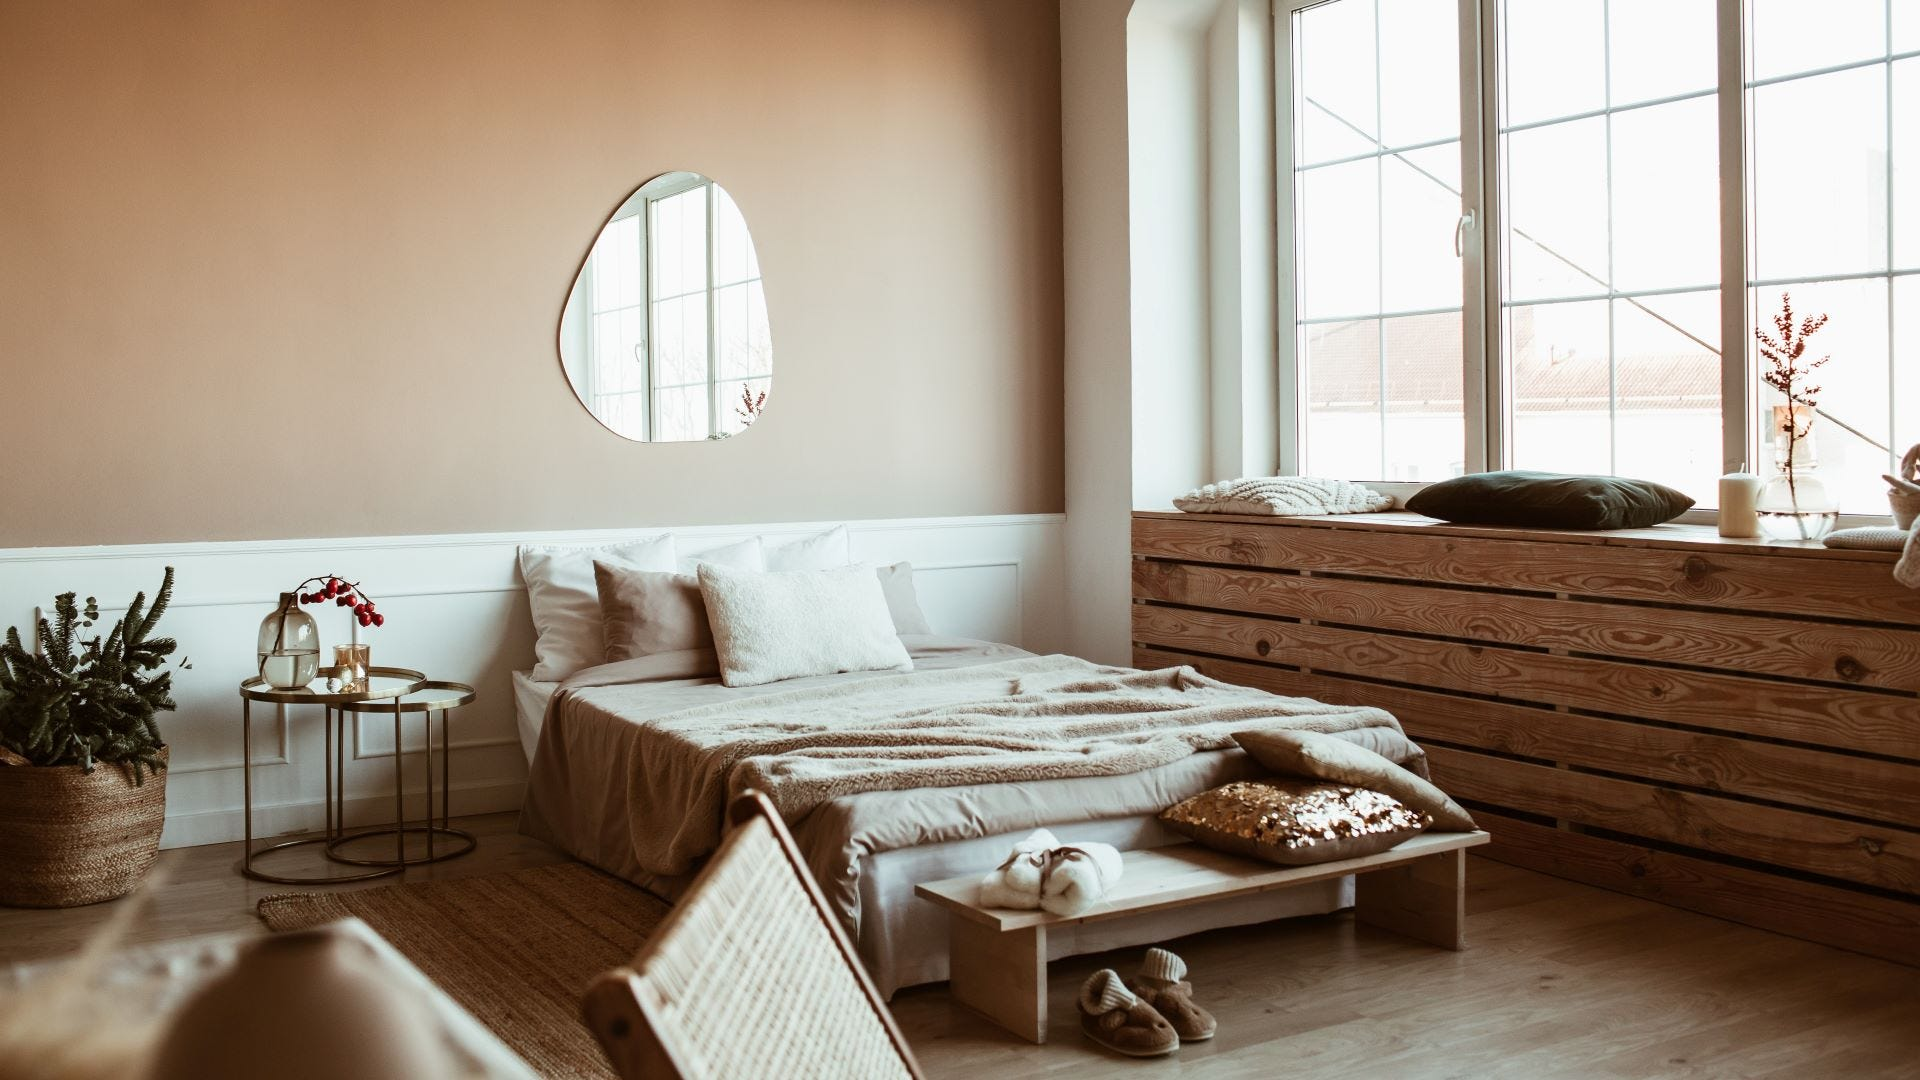 A blush and beige bedroom with wooden accents and plants.